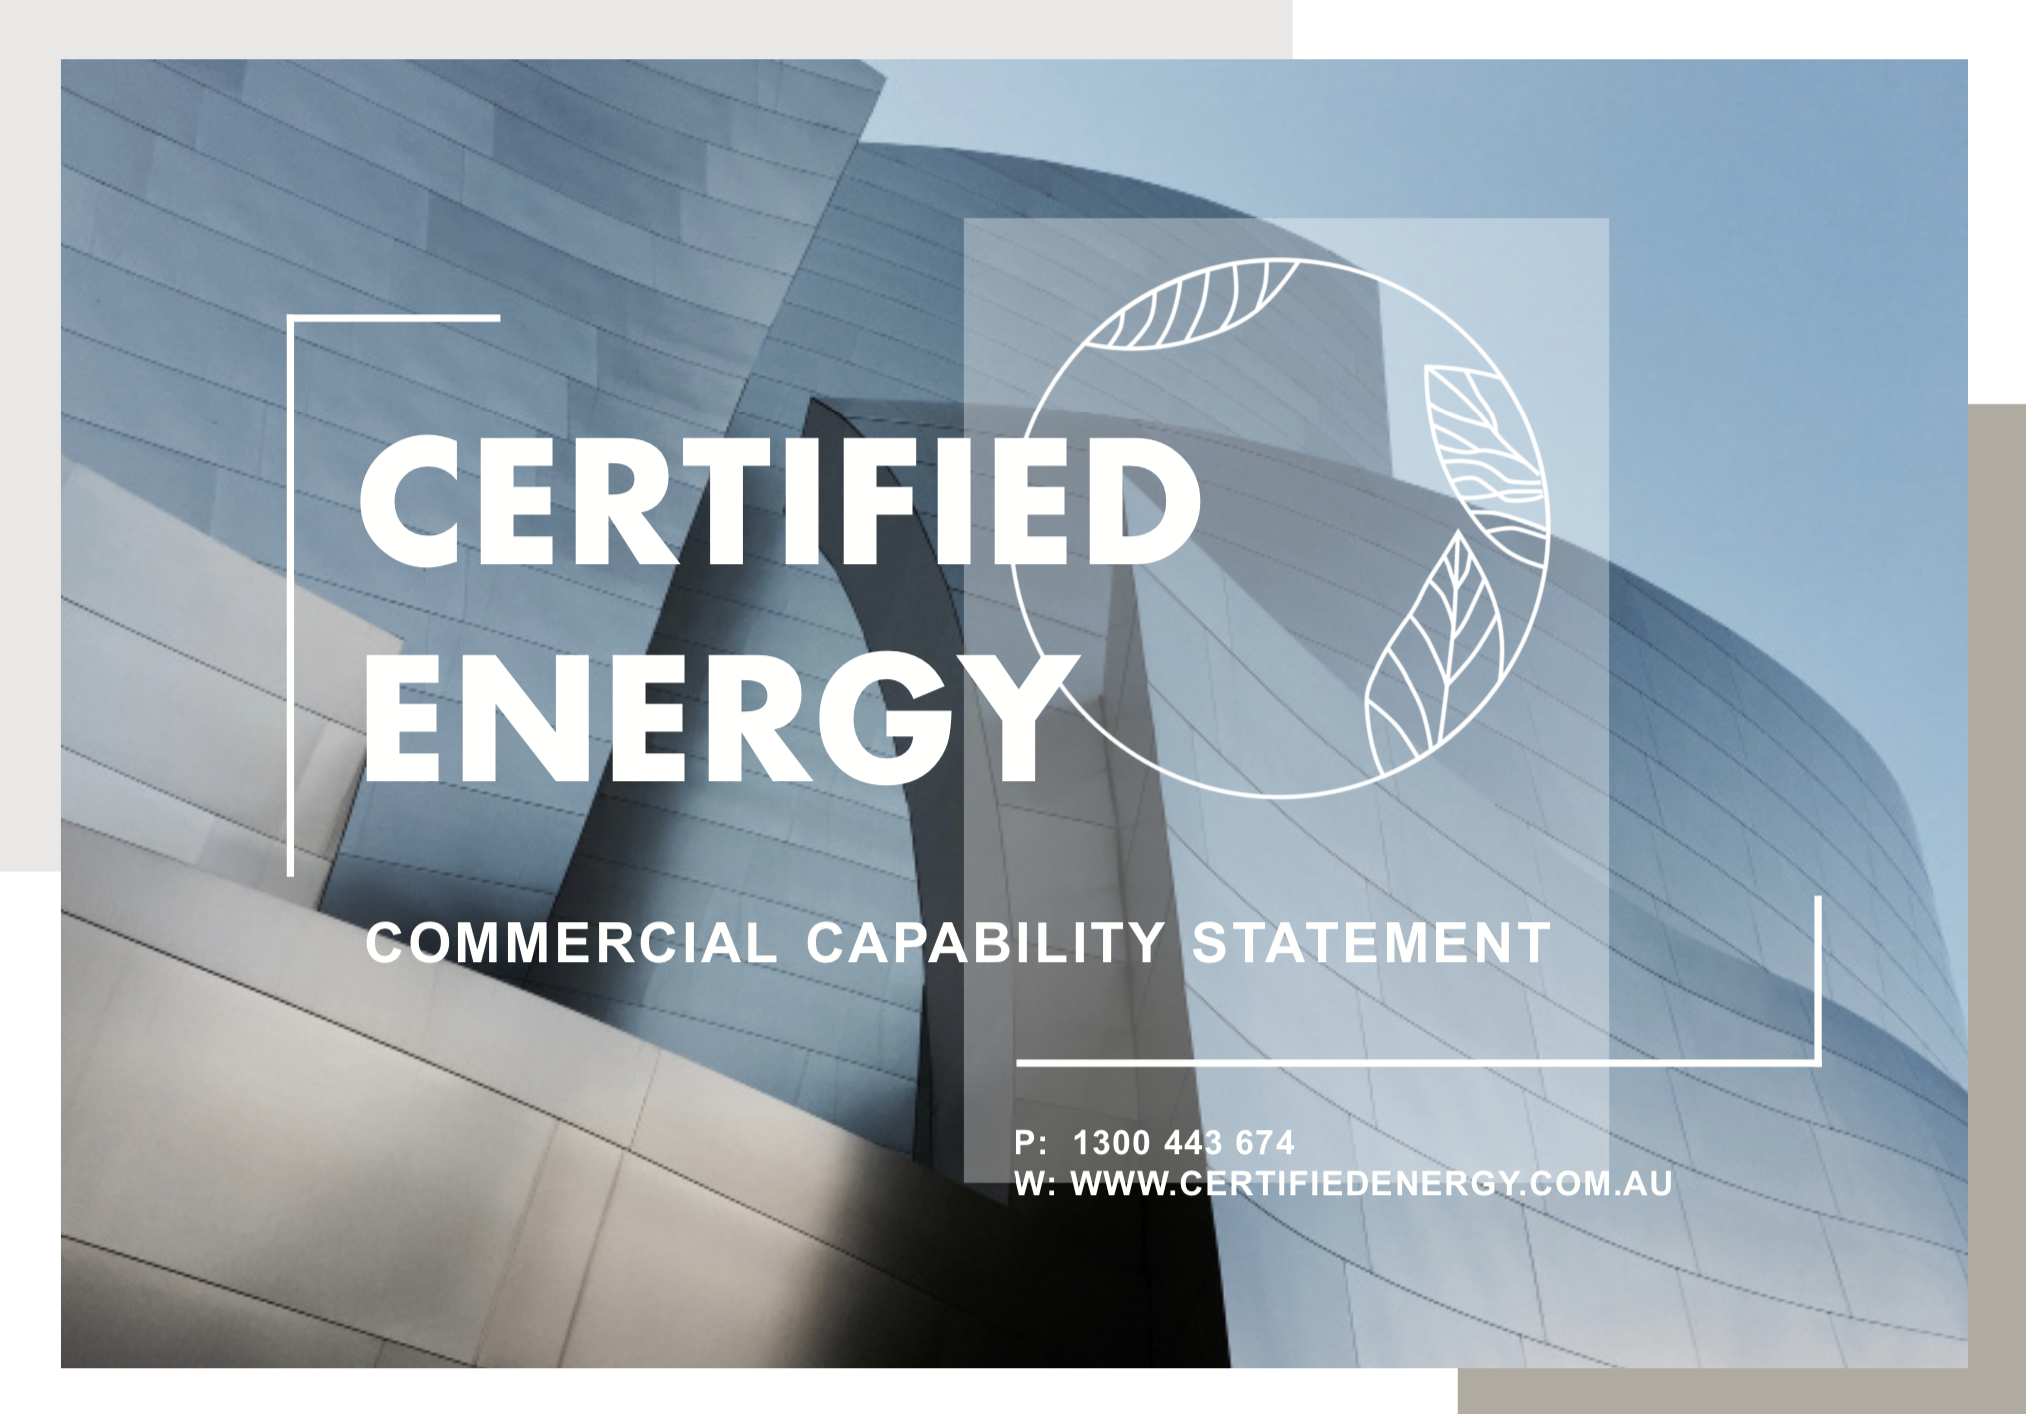 Commercial Capability Statement Image